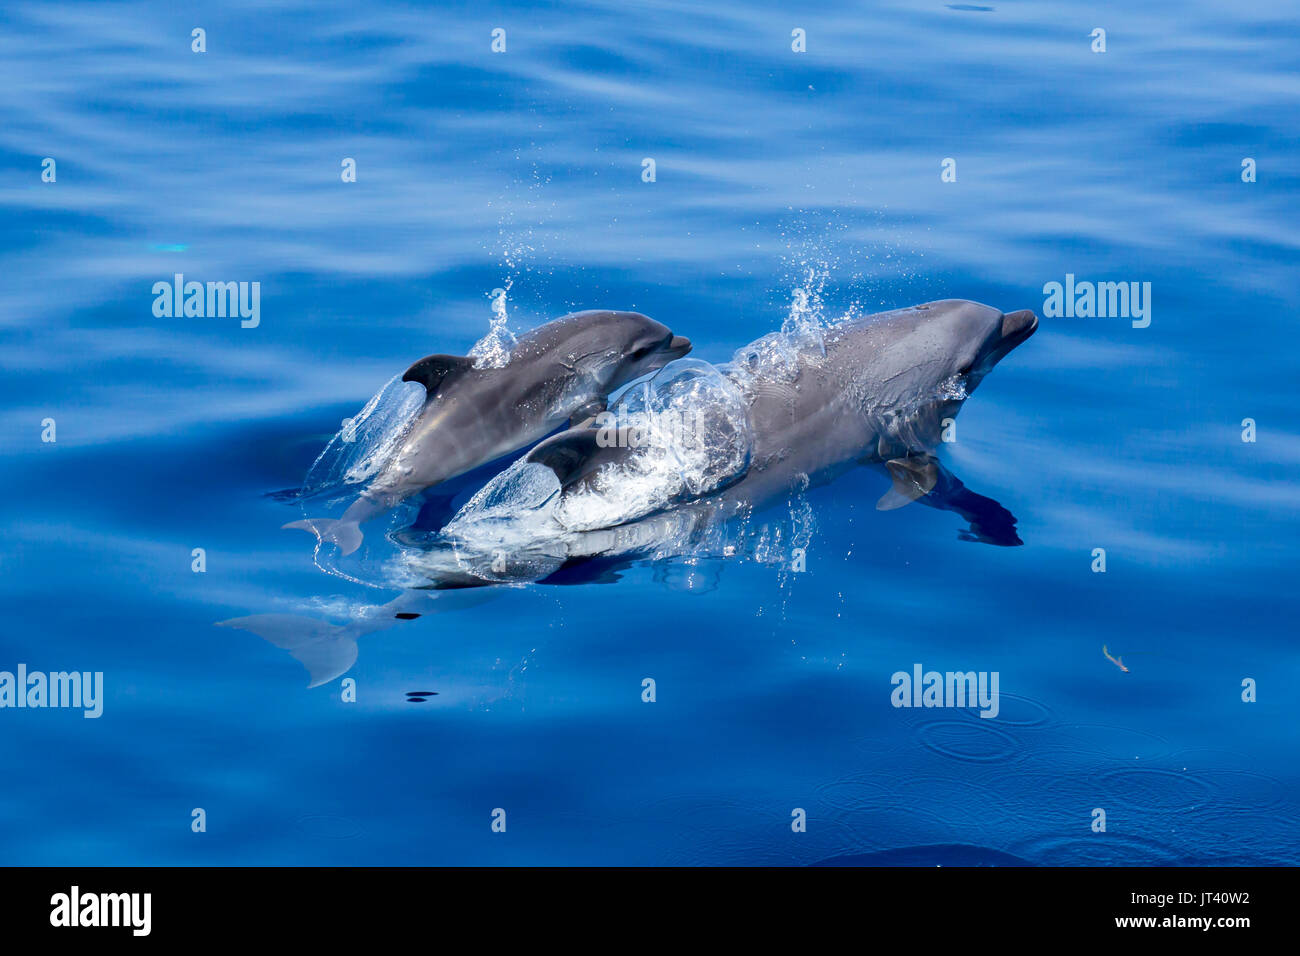 Indo-Pacific Bottlenose Dolphin (Tursiops aduncus) mother and baby surfacing in the glassy calm sea - Stock Image